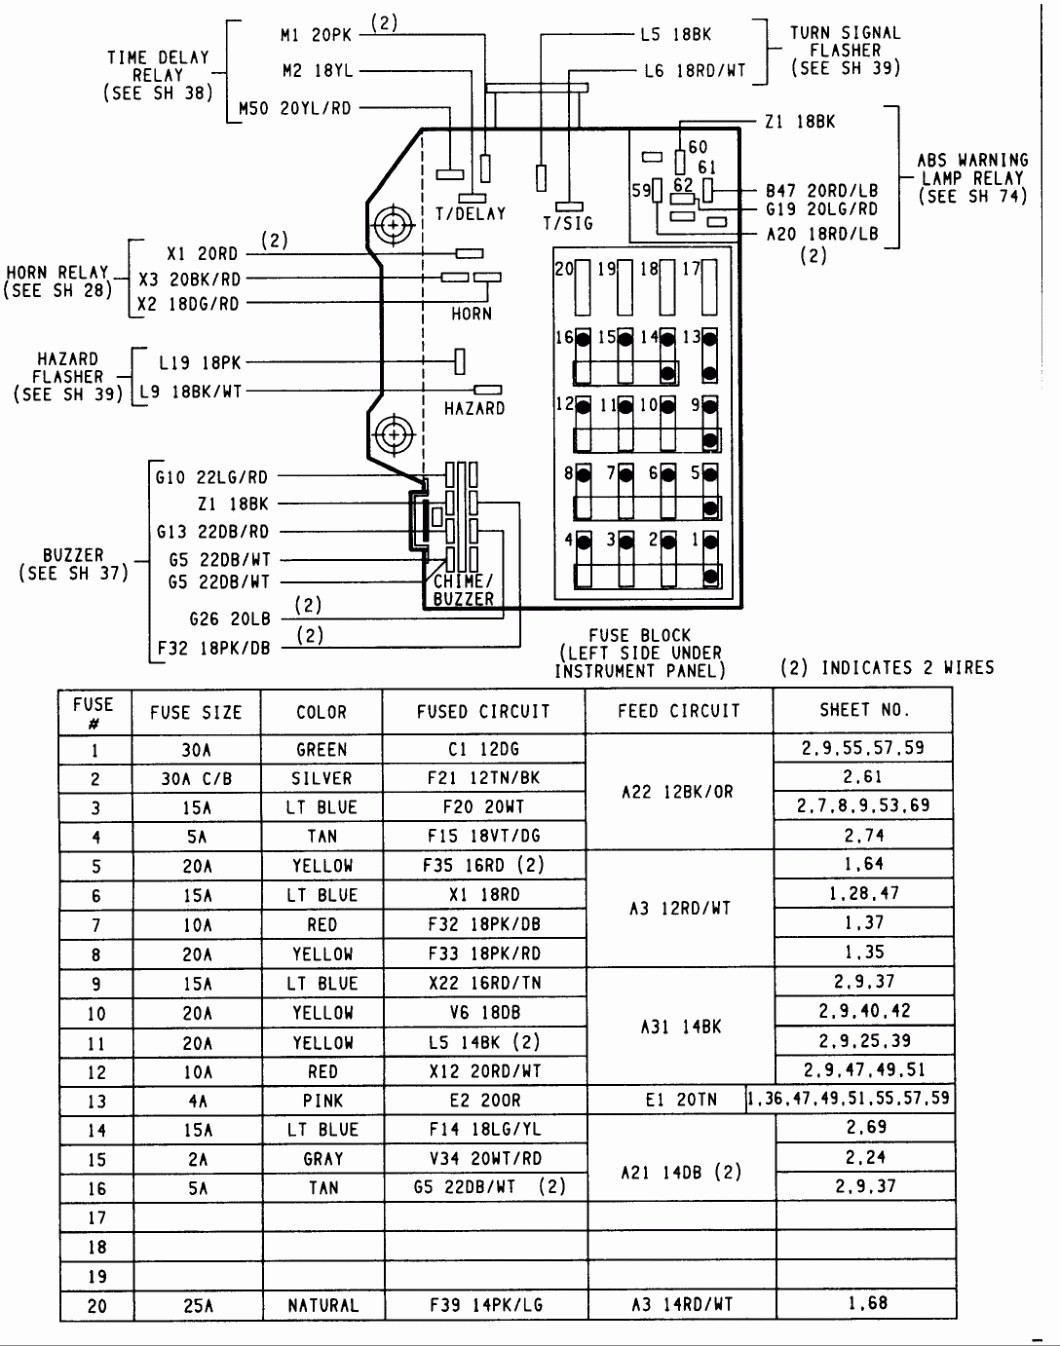 2007 Dodge Charger Fuse Box : Diagram Dodge Charger Fuse